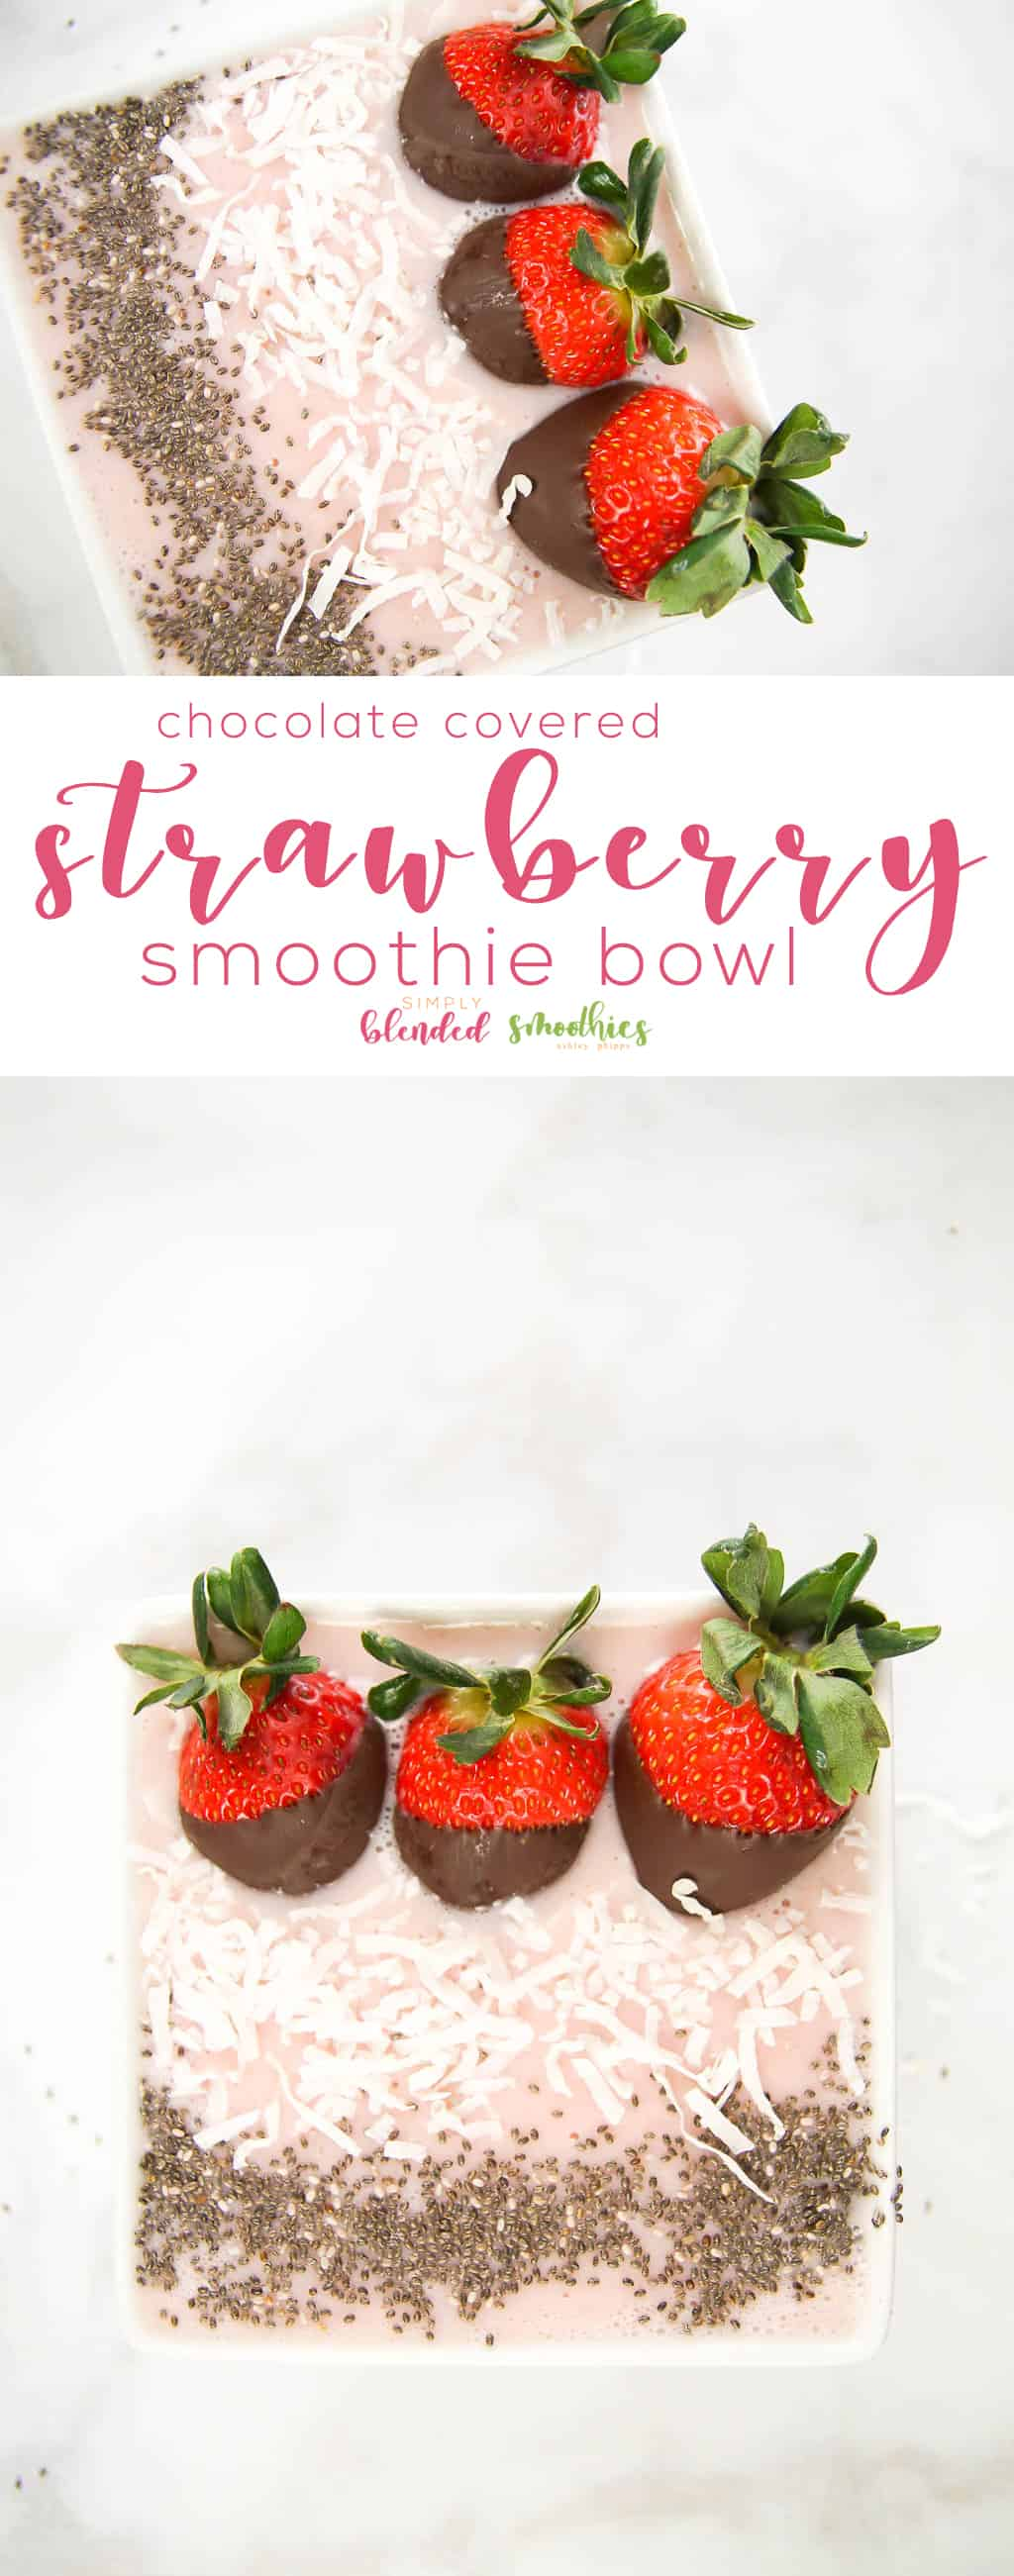 Chocolate Covered Strawberry Smoothie Bowl - a delicious strawberry smoothie bowl with chocolate covered strawberries on top - smoothie bowl